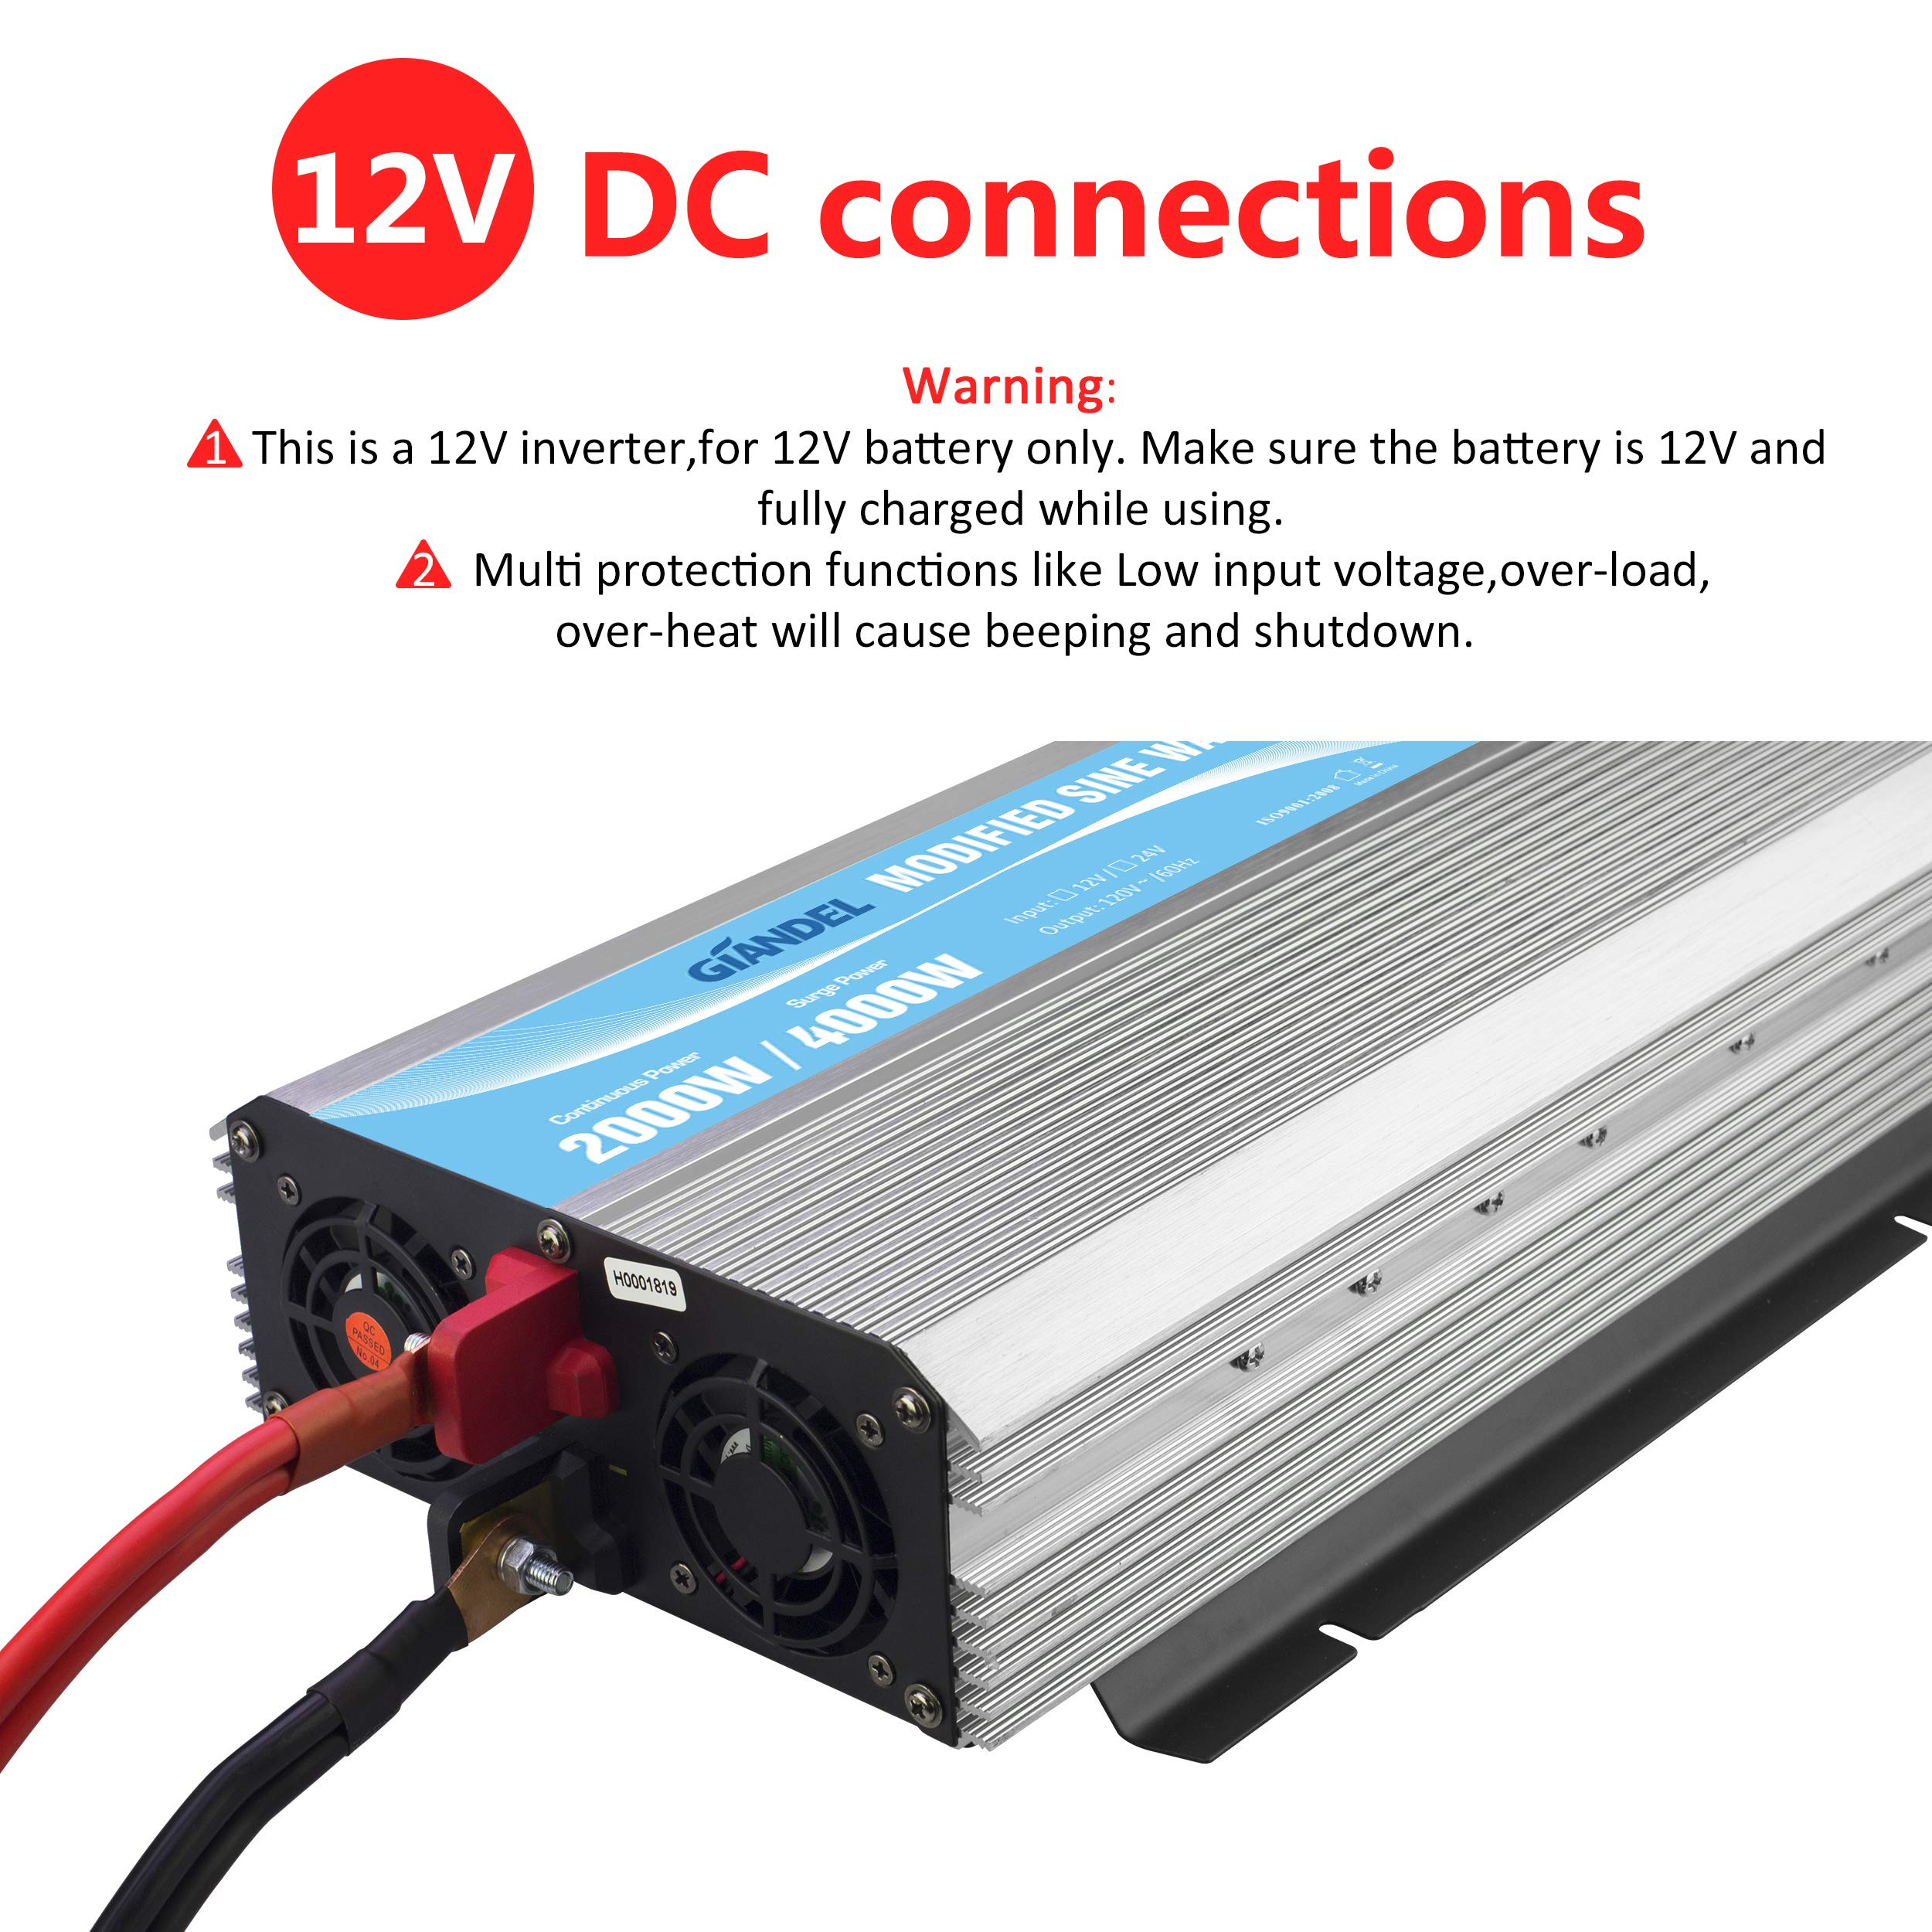 GIANDEL 2000W Power Inverter 12V DC to 110V 120V AC with Remote Control and LED Display Dual AC Outlets & USB Port for RV Truck Boat by Giandel (Image #4)